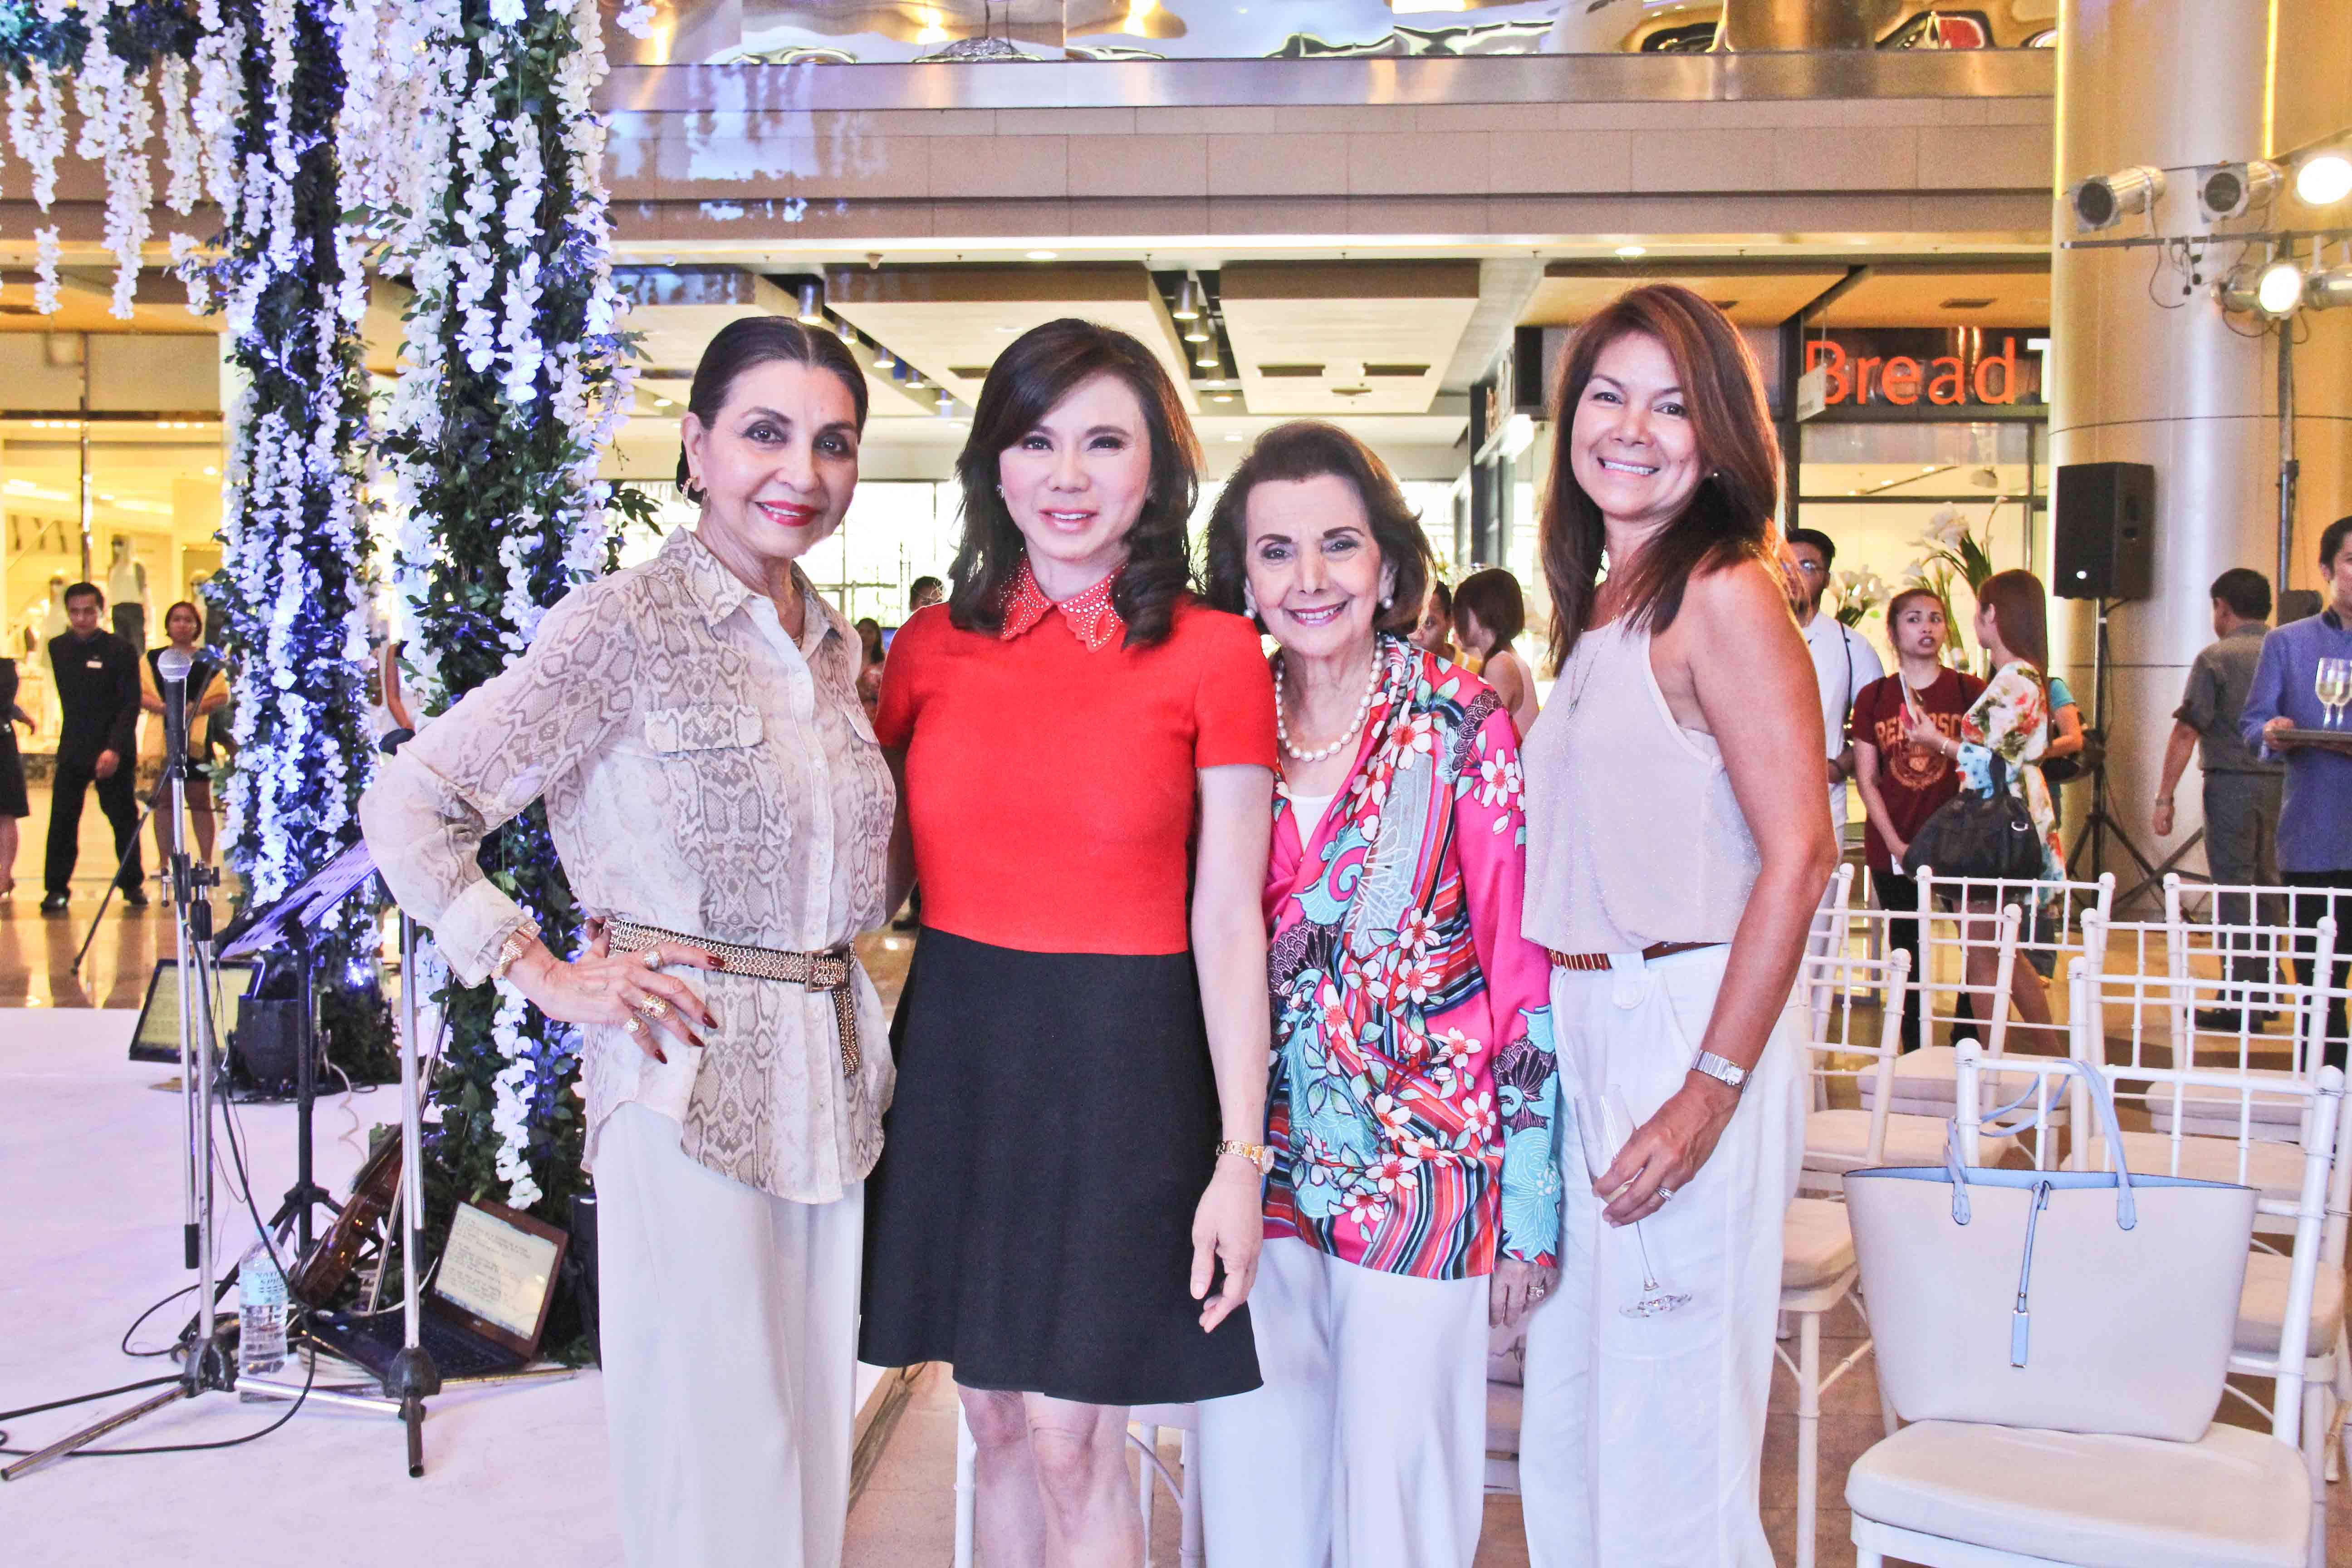 Amparito Lhuillier, Dr. Vicki Belo, Teresin Mendezona, and Rose Hennessy